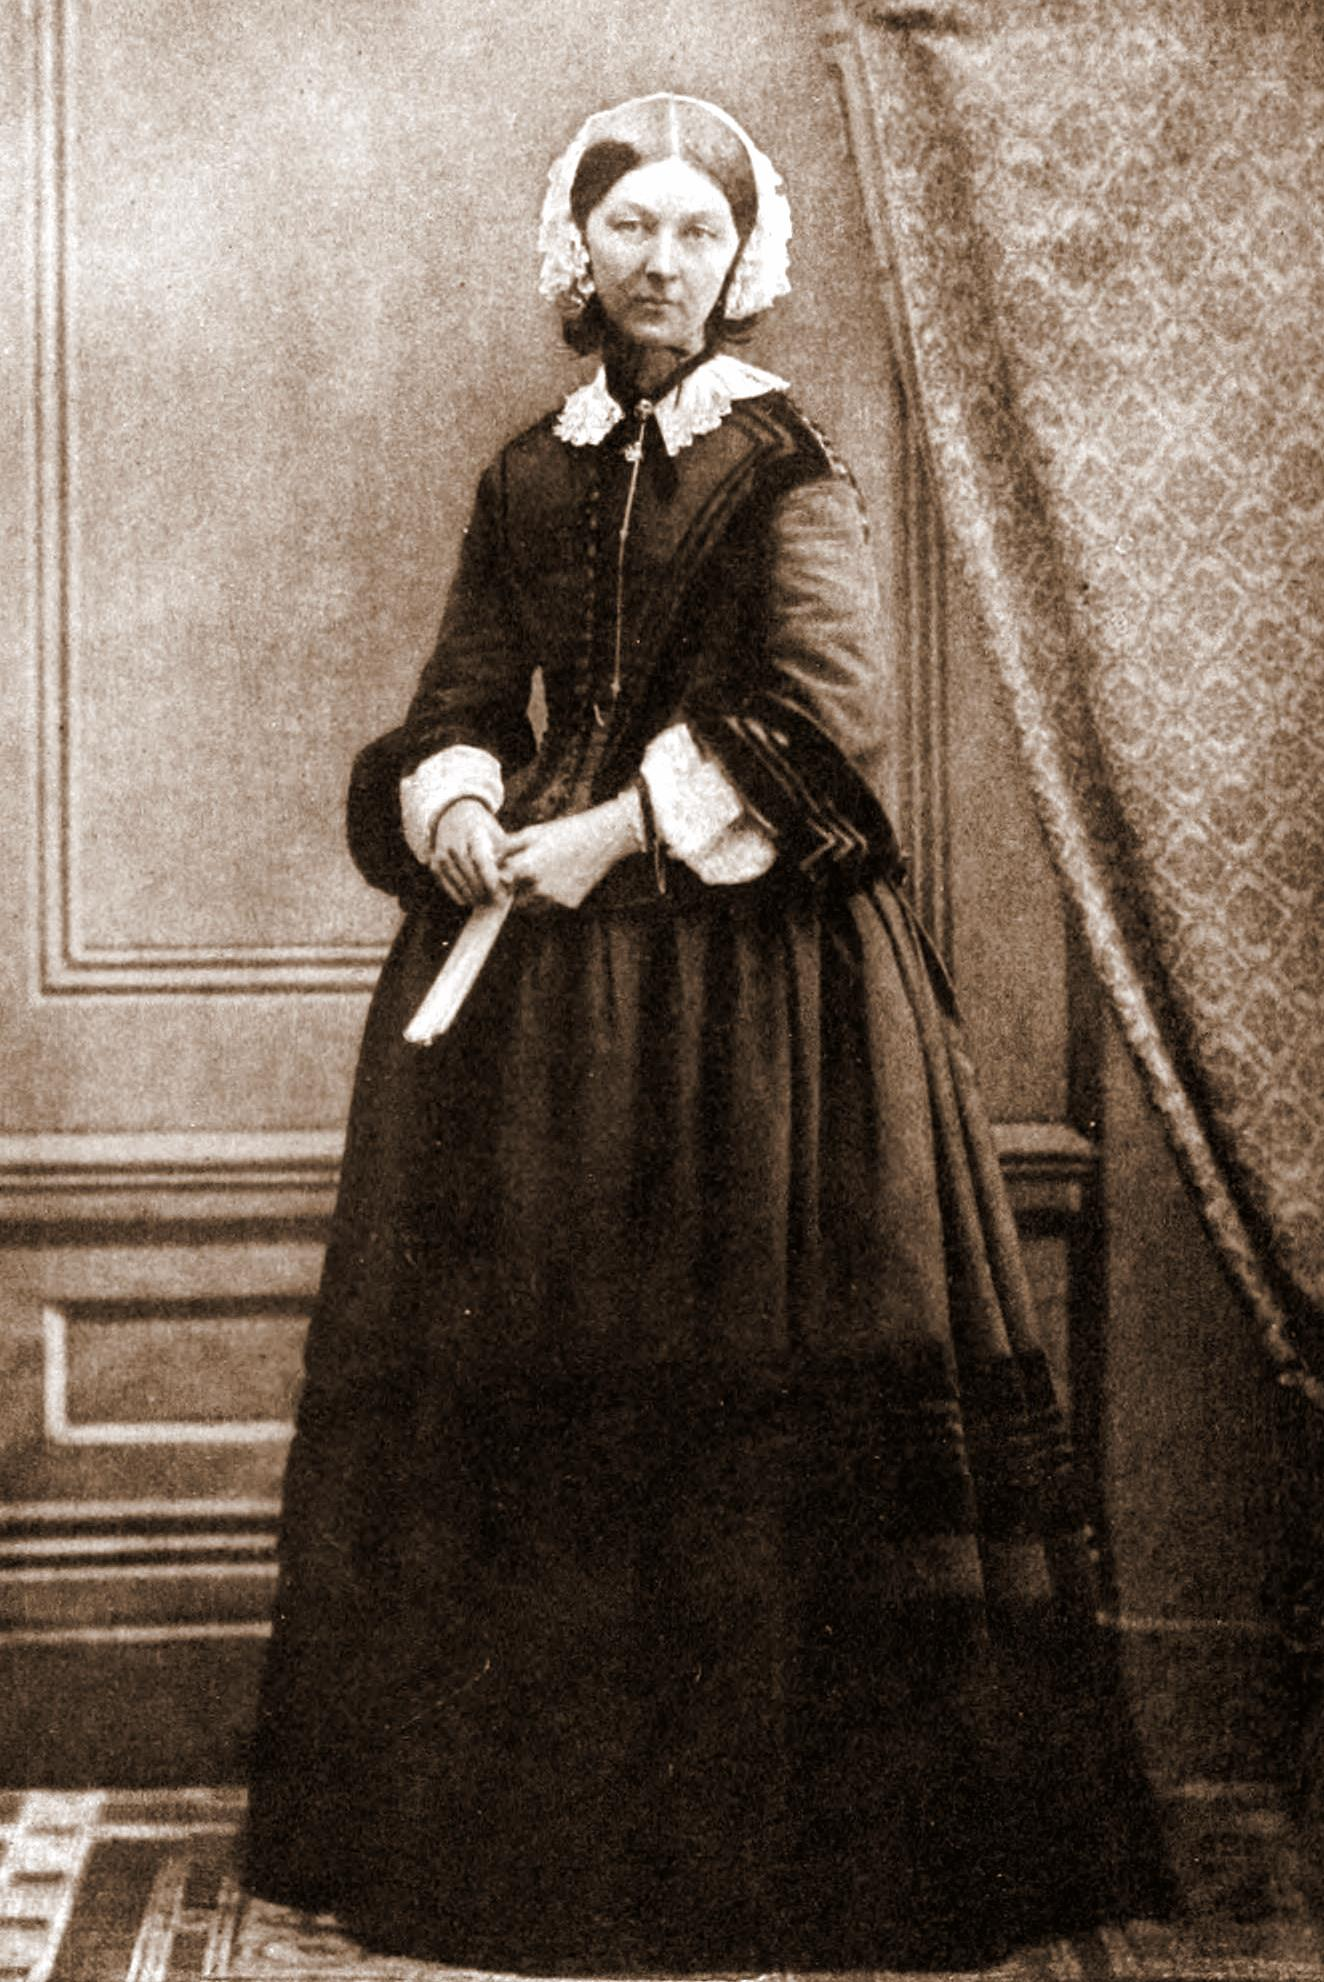 Watson's Theory of Nursing Florence Nightingale Taught&nbspTerm Paper